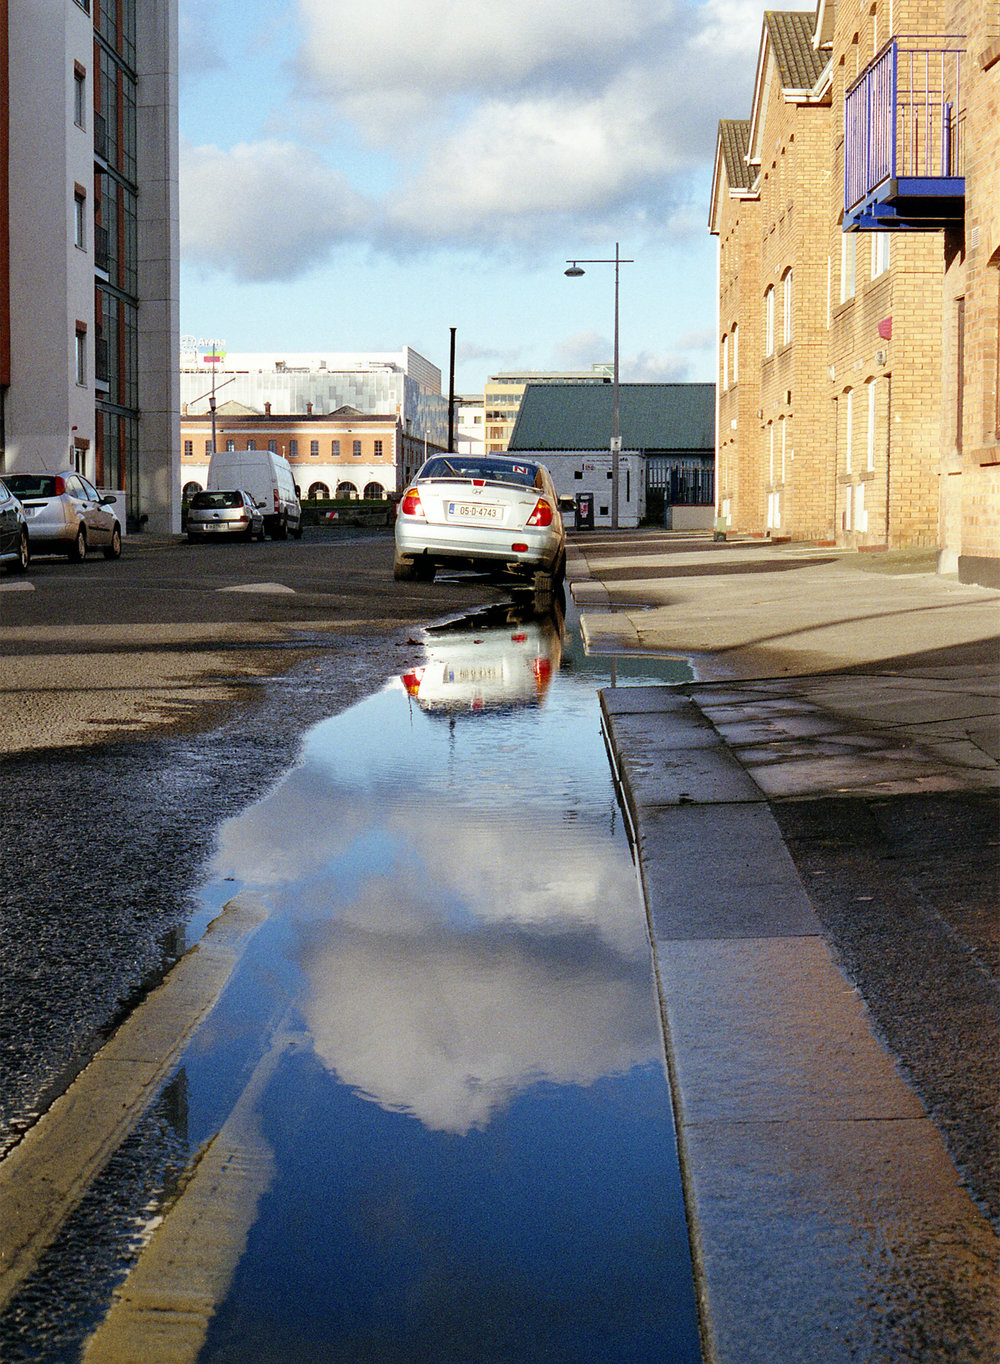 25 car puddle copy.jpg